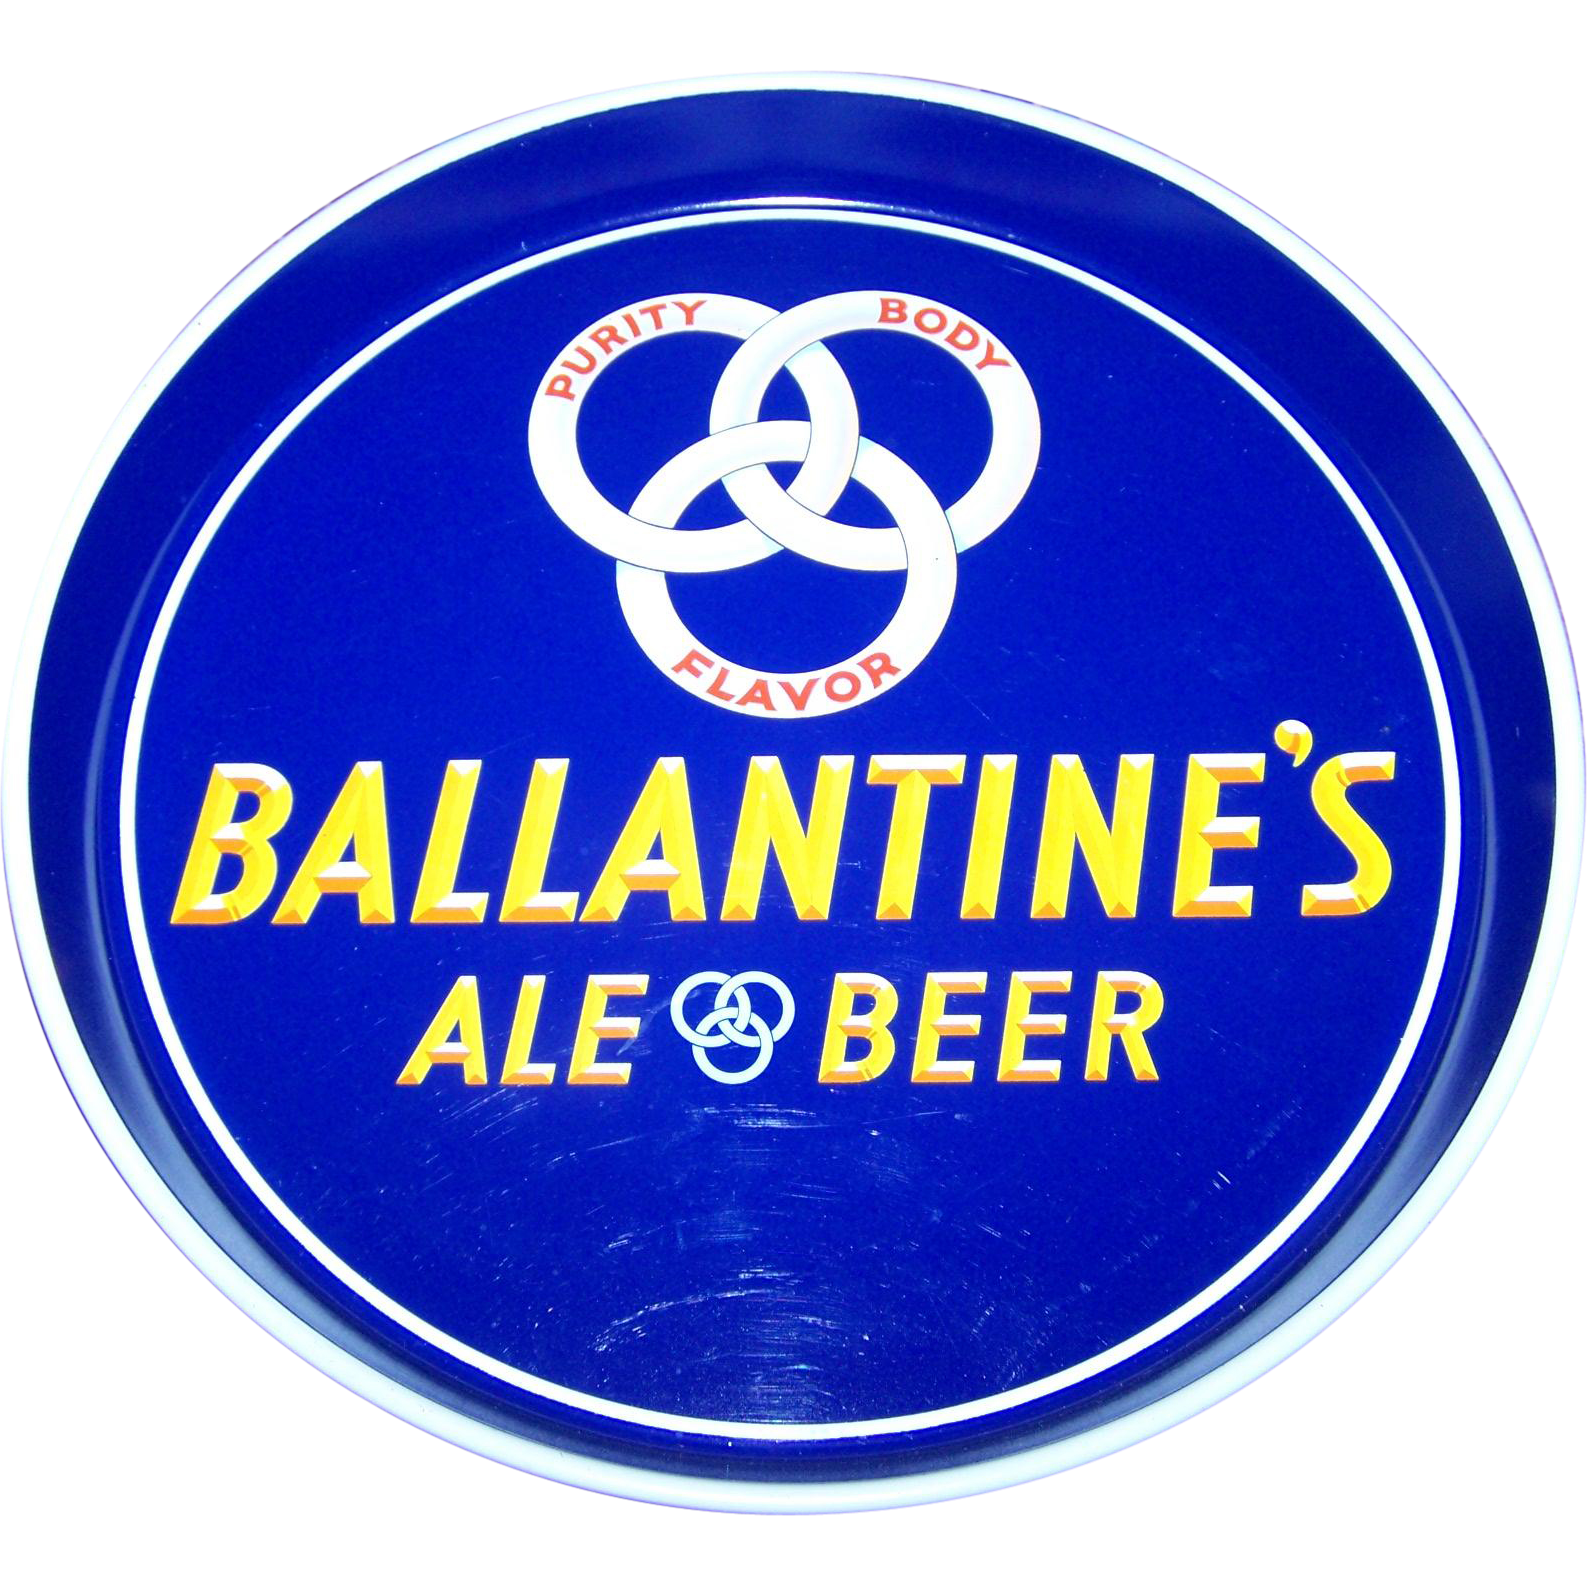 Vintage Advertising Tin Litho Tray Ballantine's Ale Beer